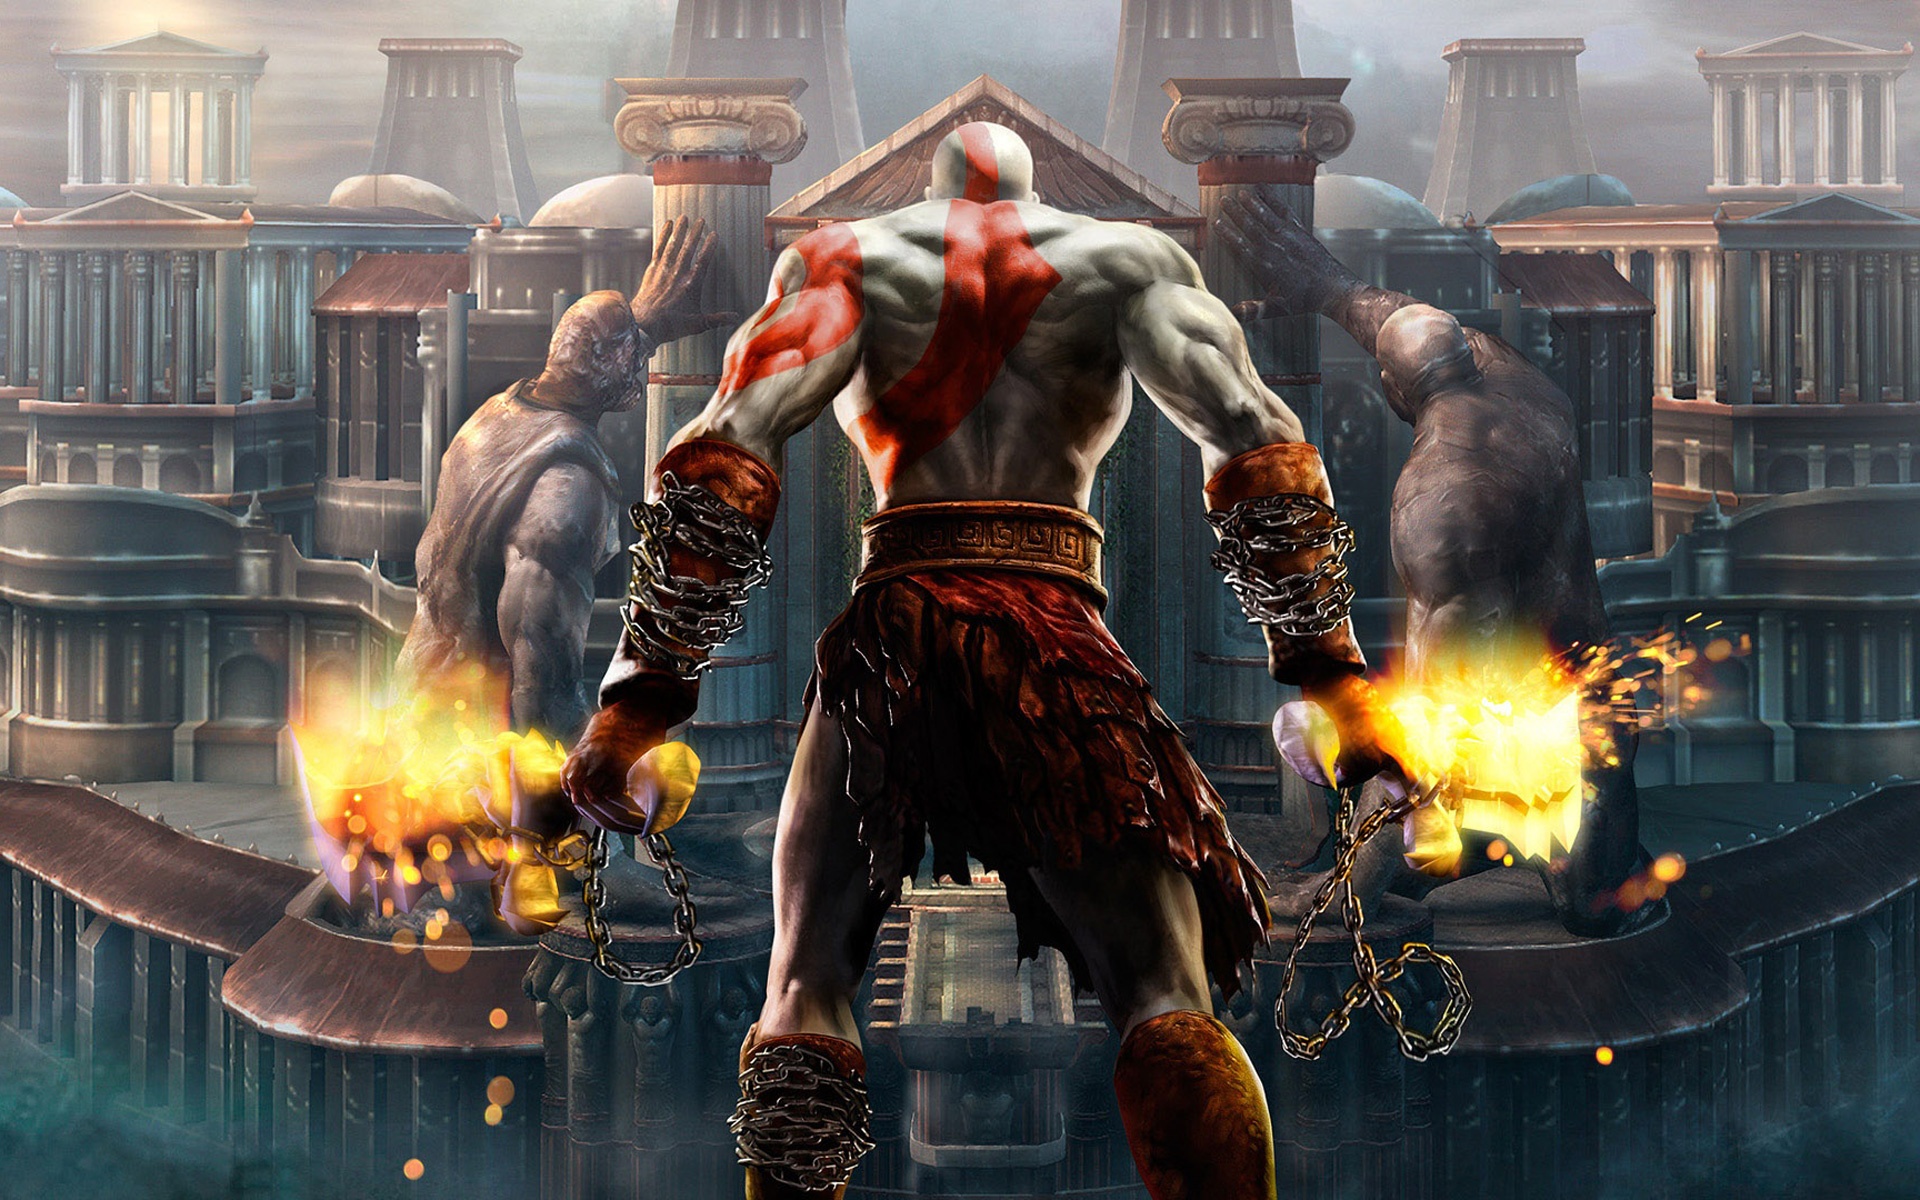 A new God of War game on PS4 would be amazingly brutal.